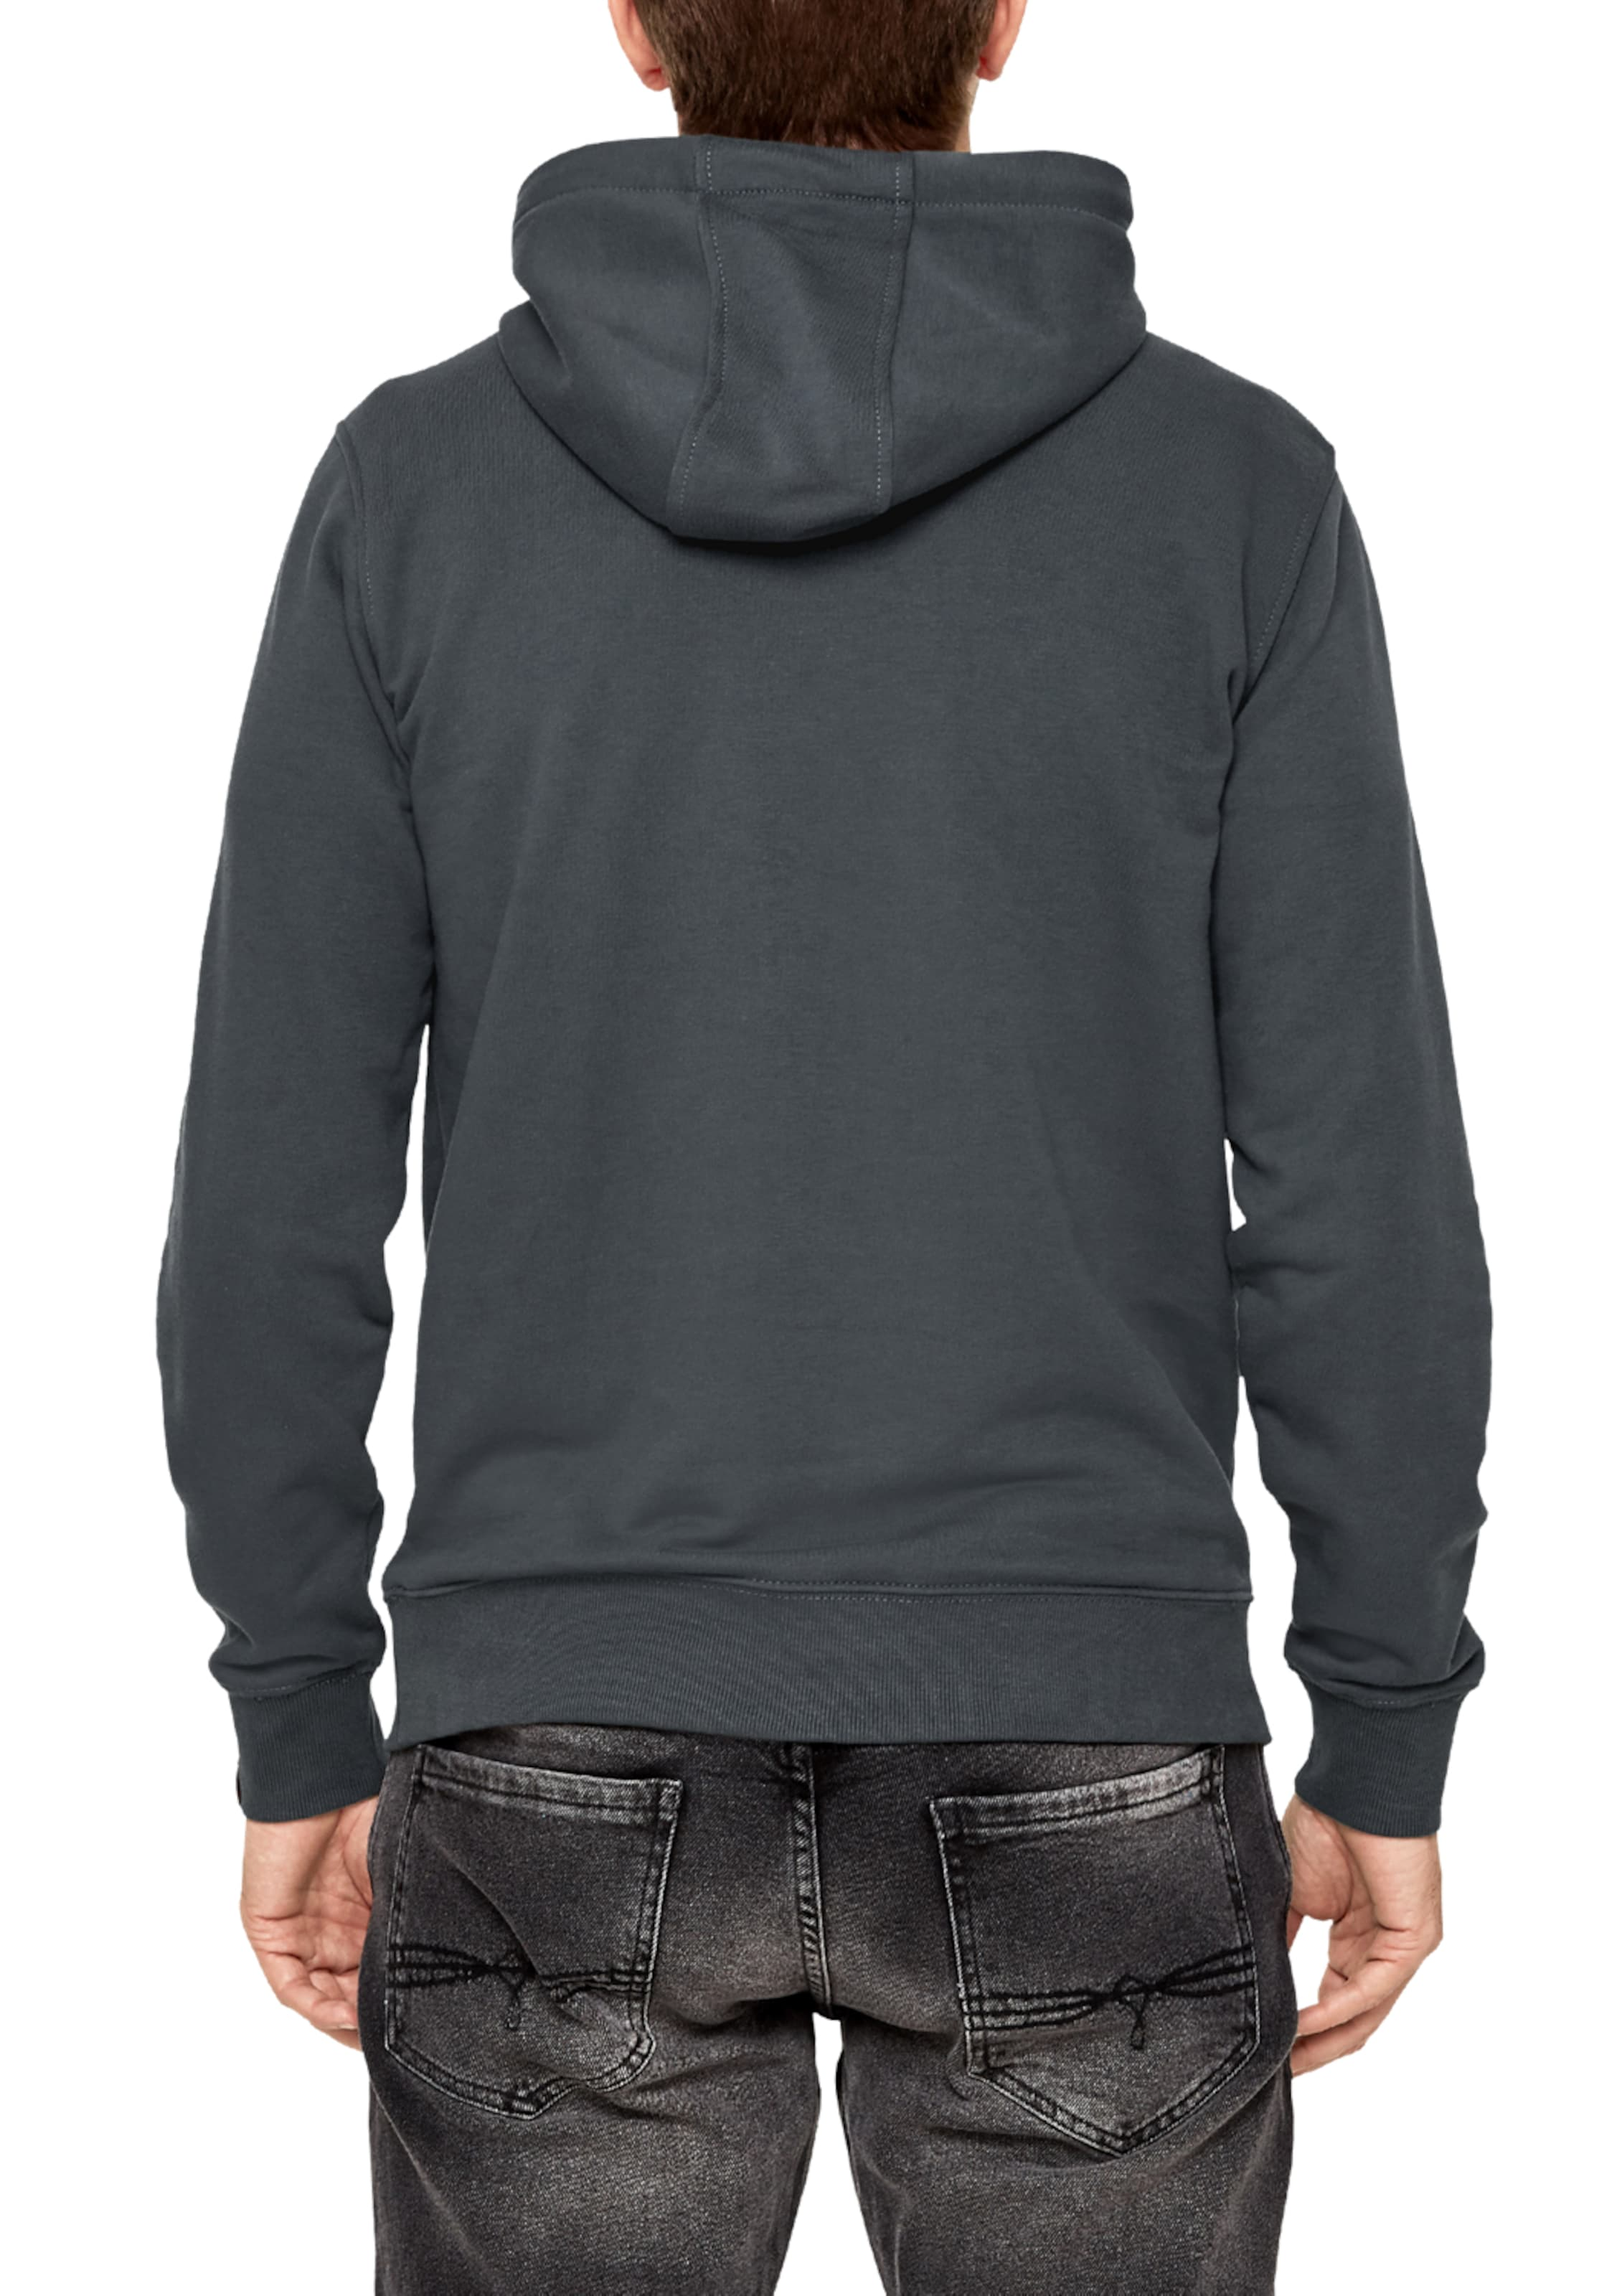 S oliver Label Hoodie Dunkelgrau 'authentic' Red In vmNw8nOy0